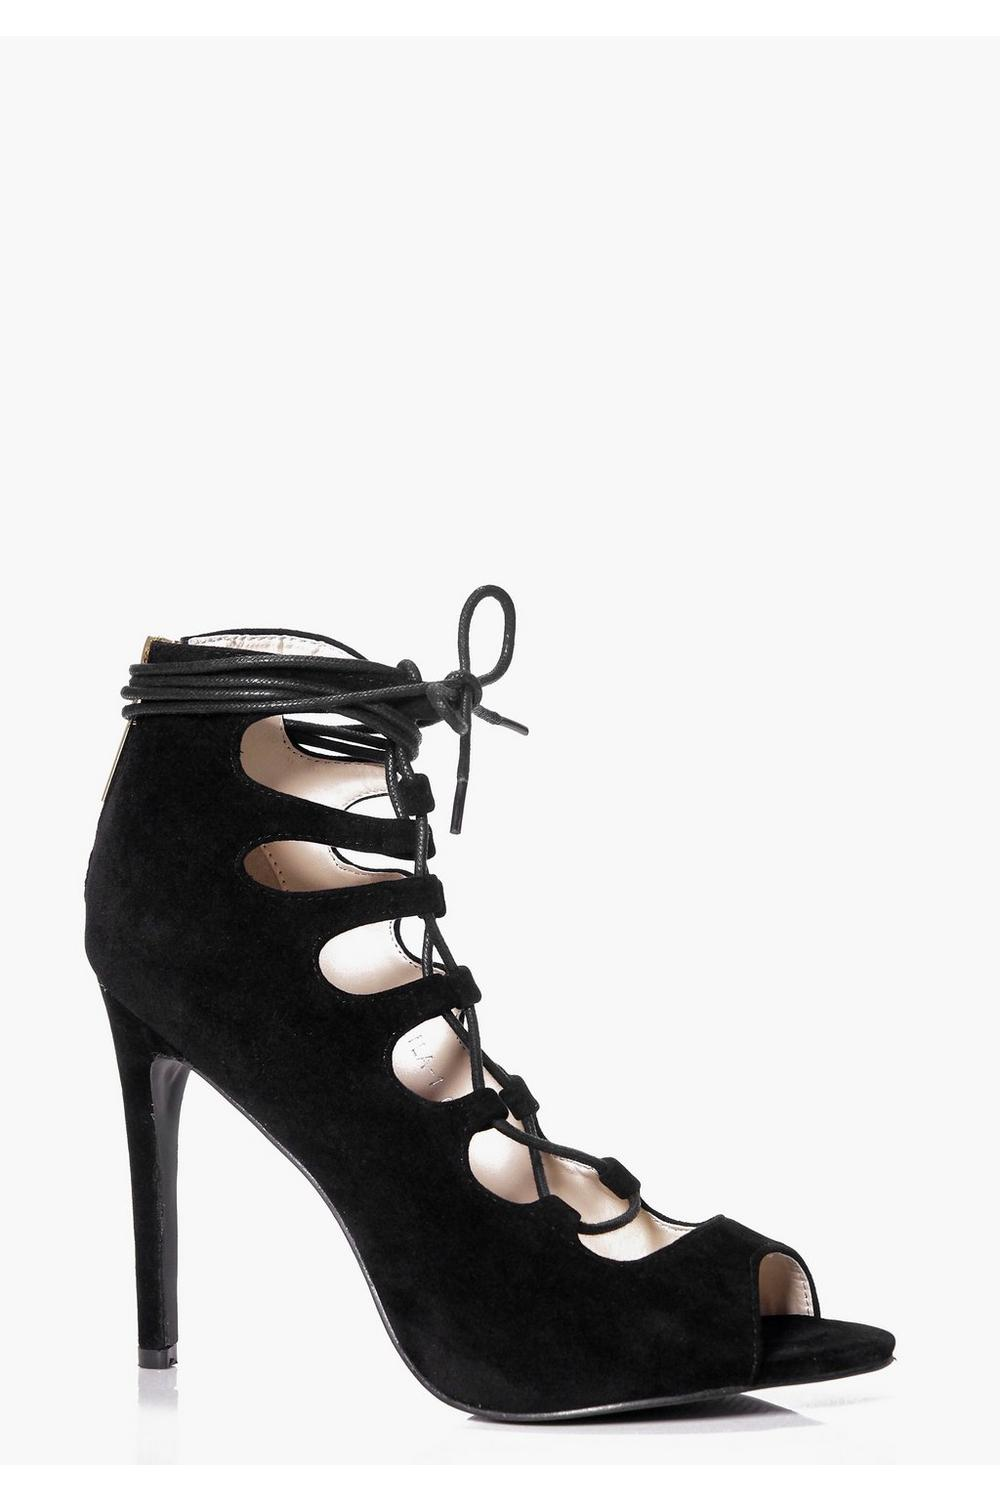 Kaya Lace Up Peep Toe Gladiator Heels